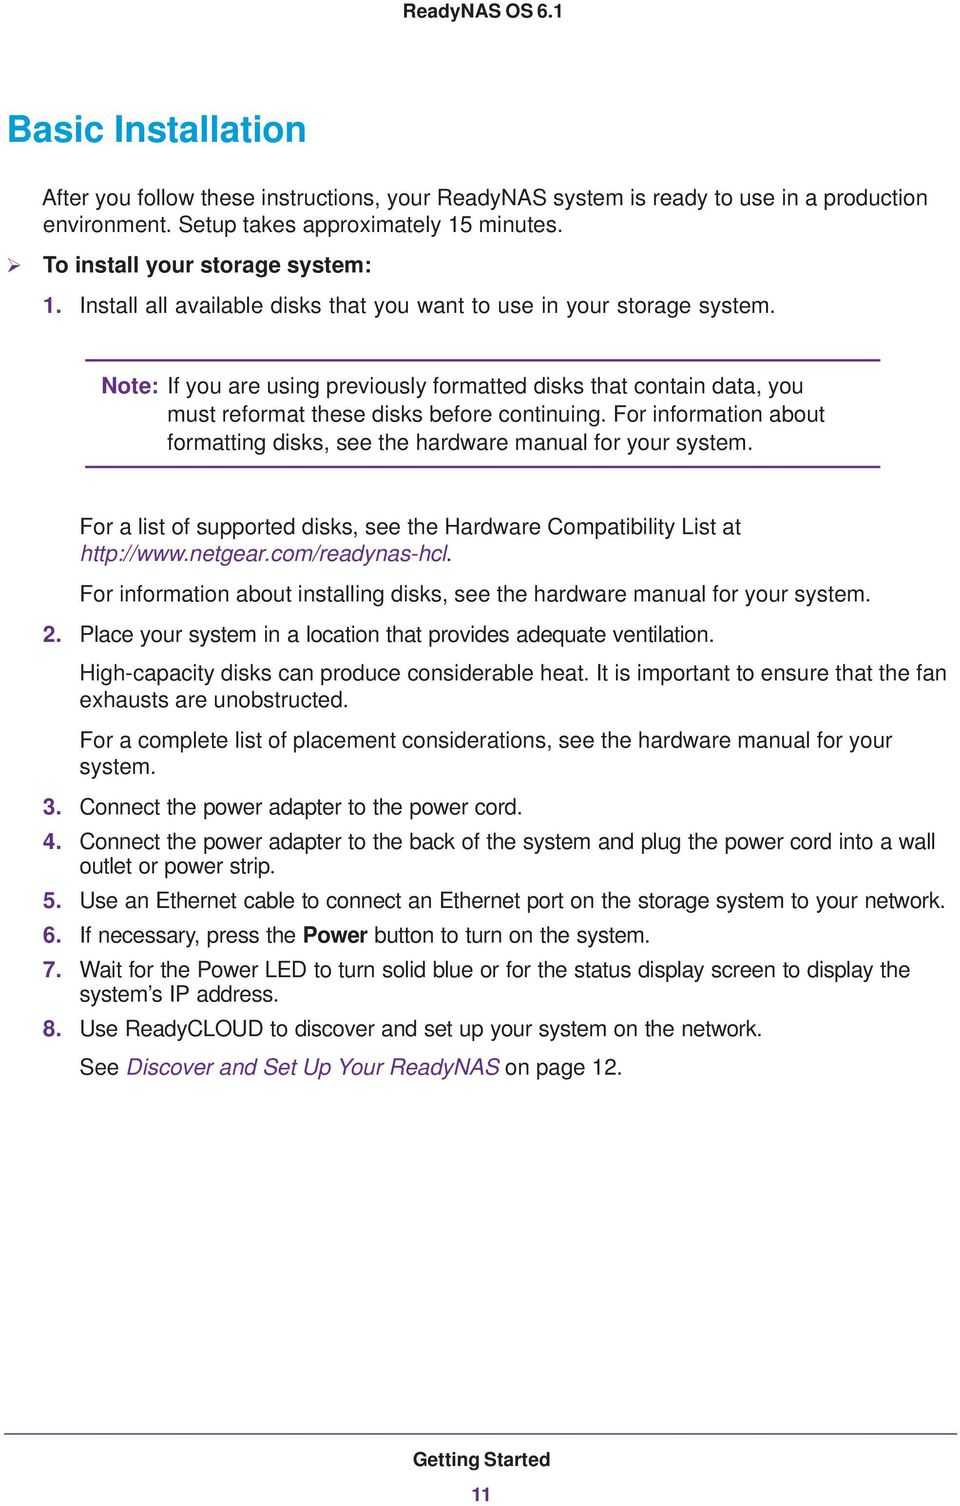 For information about formatting disks, see the hardware manual for your system. For a list of supported disks, see the Hardware Compatibility List at http://www.netgear.com/readynas-hcl.